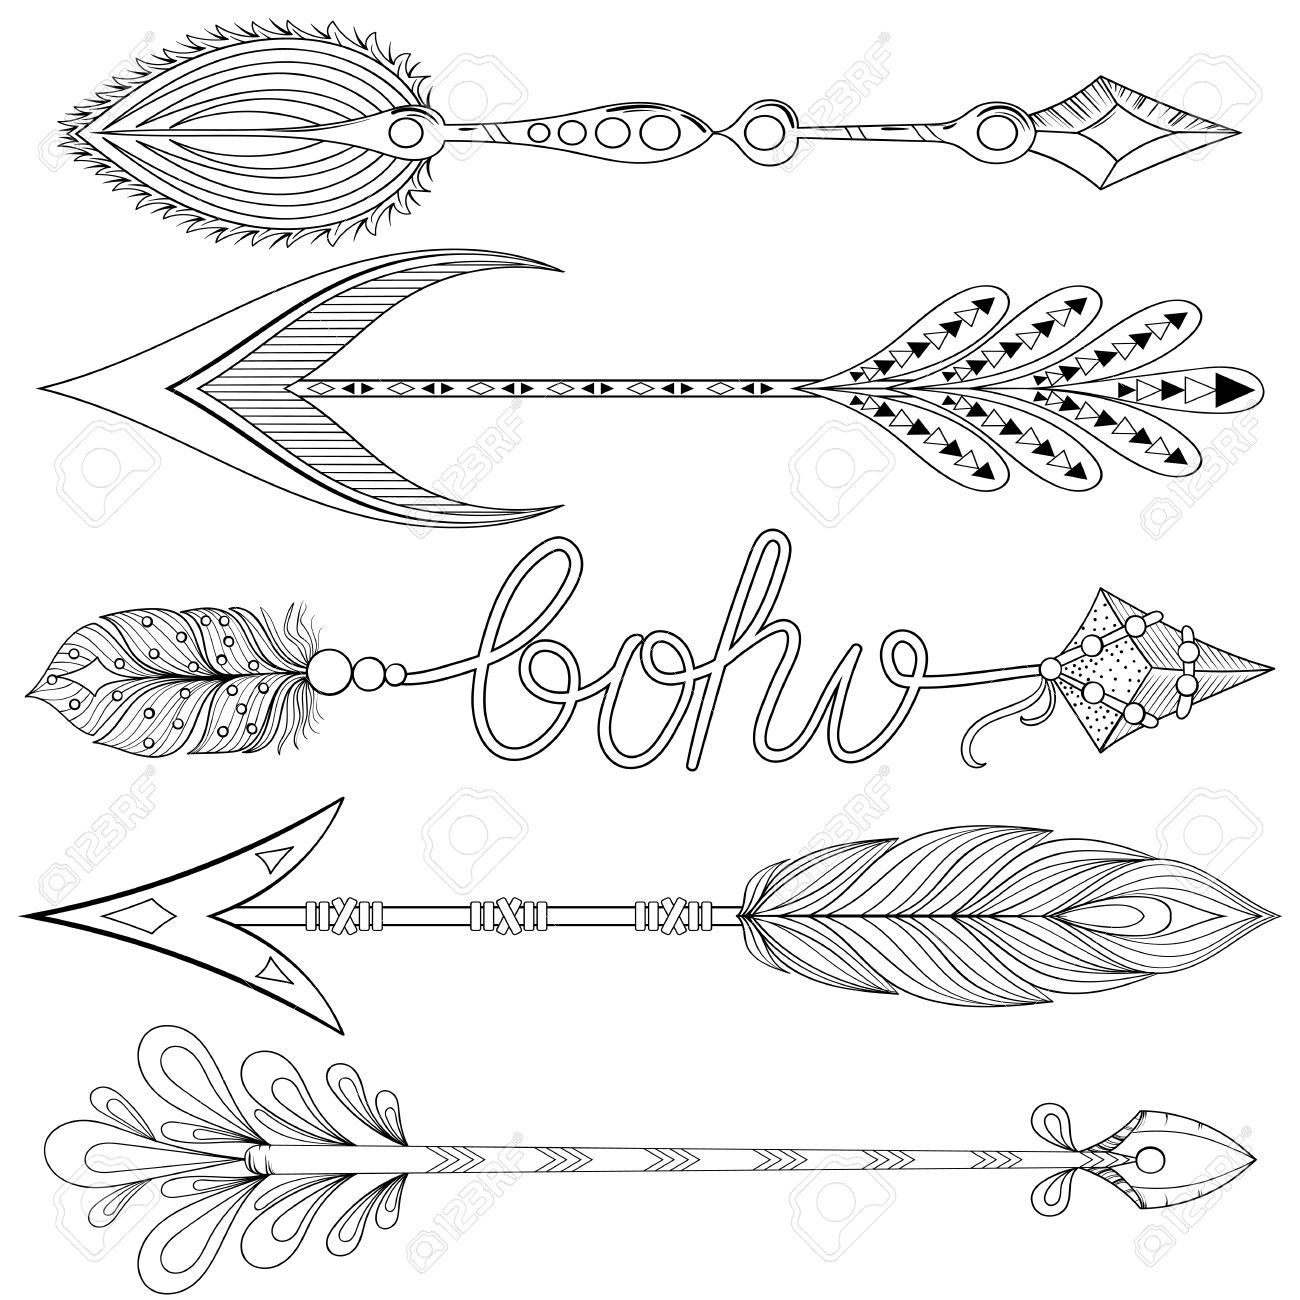 1300x1300 Best Of Bohemian Arrows Set With Feathers Hand Drawn Decorative